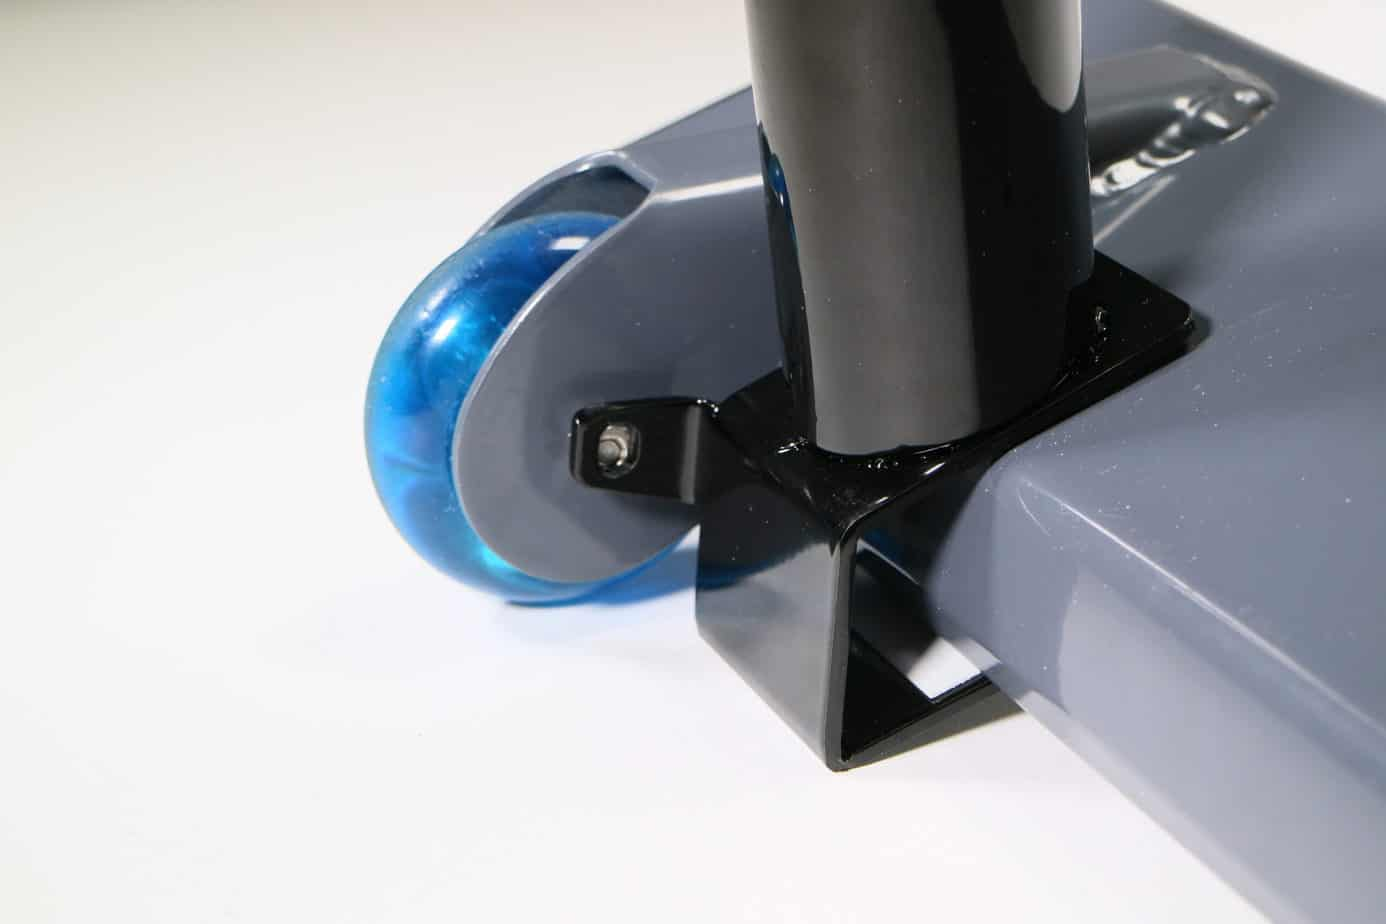 A black steel accessory bracket mounted on the base of a gray exercise equipment device